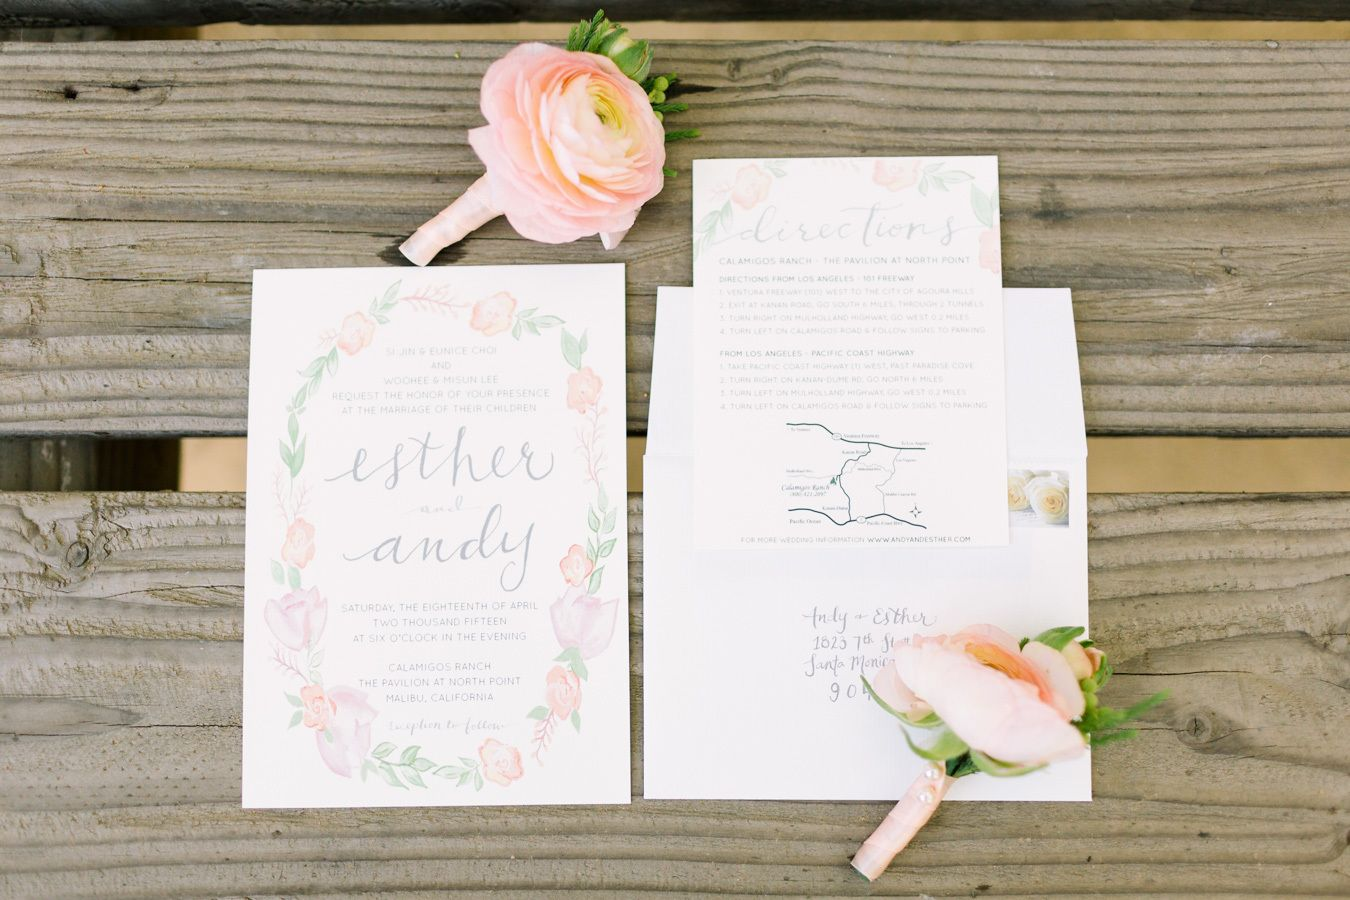 Romantic Summer Wedding at Calamigos Ranch | Invitation suite ...